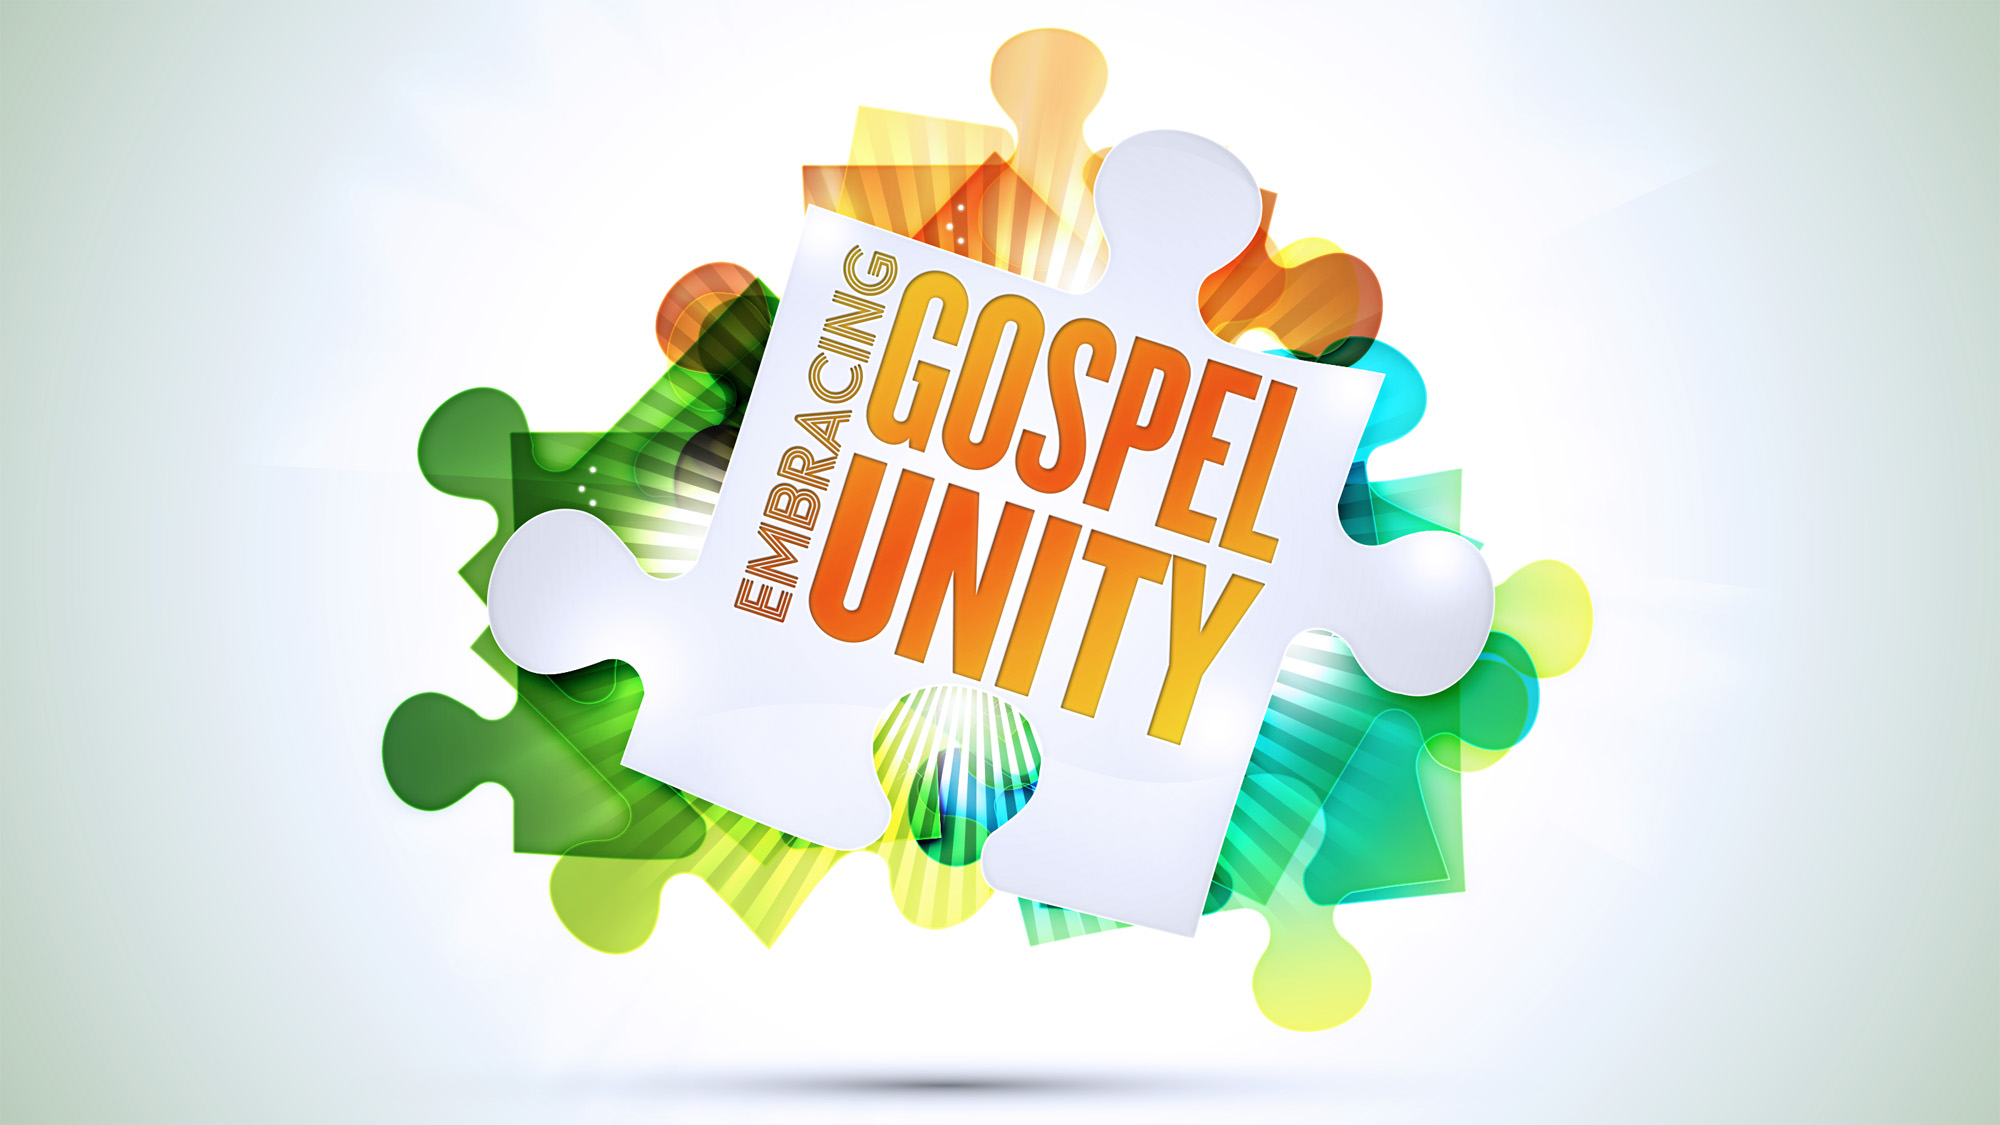 Embracing Gospel Unity